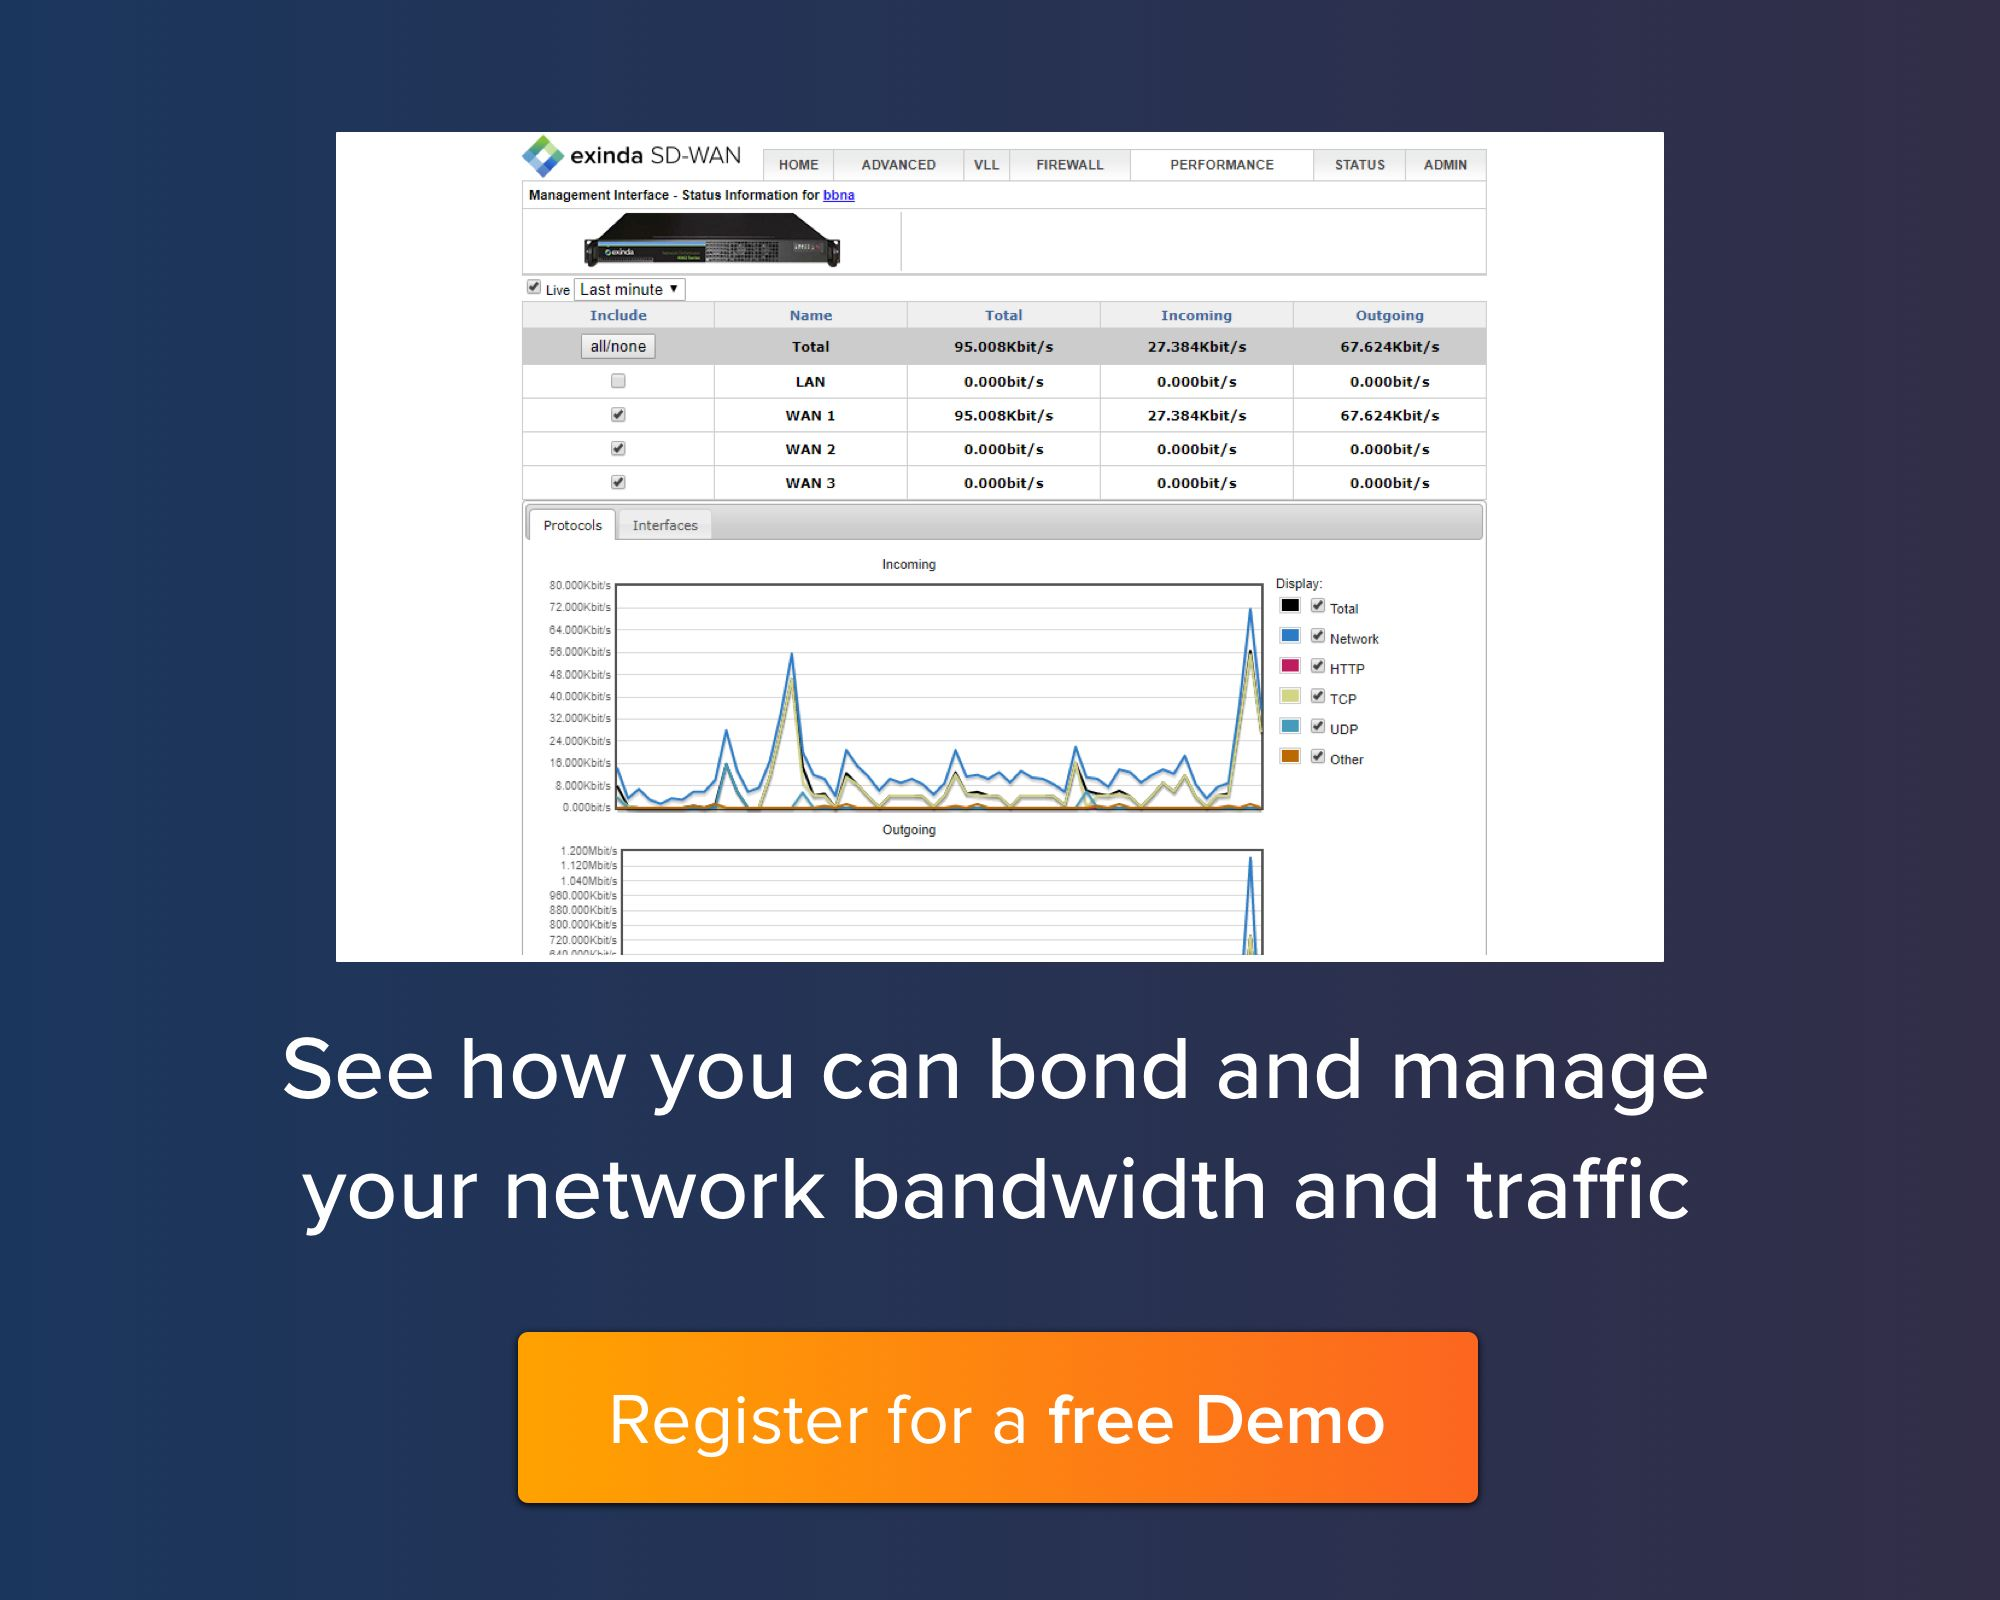 See how you can bond and manage your network bandwidth and traffic